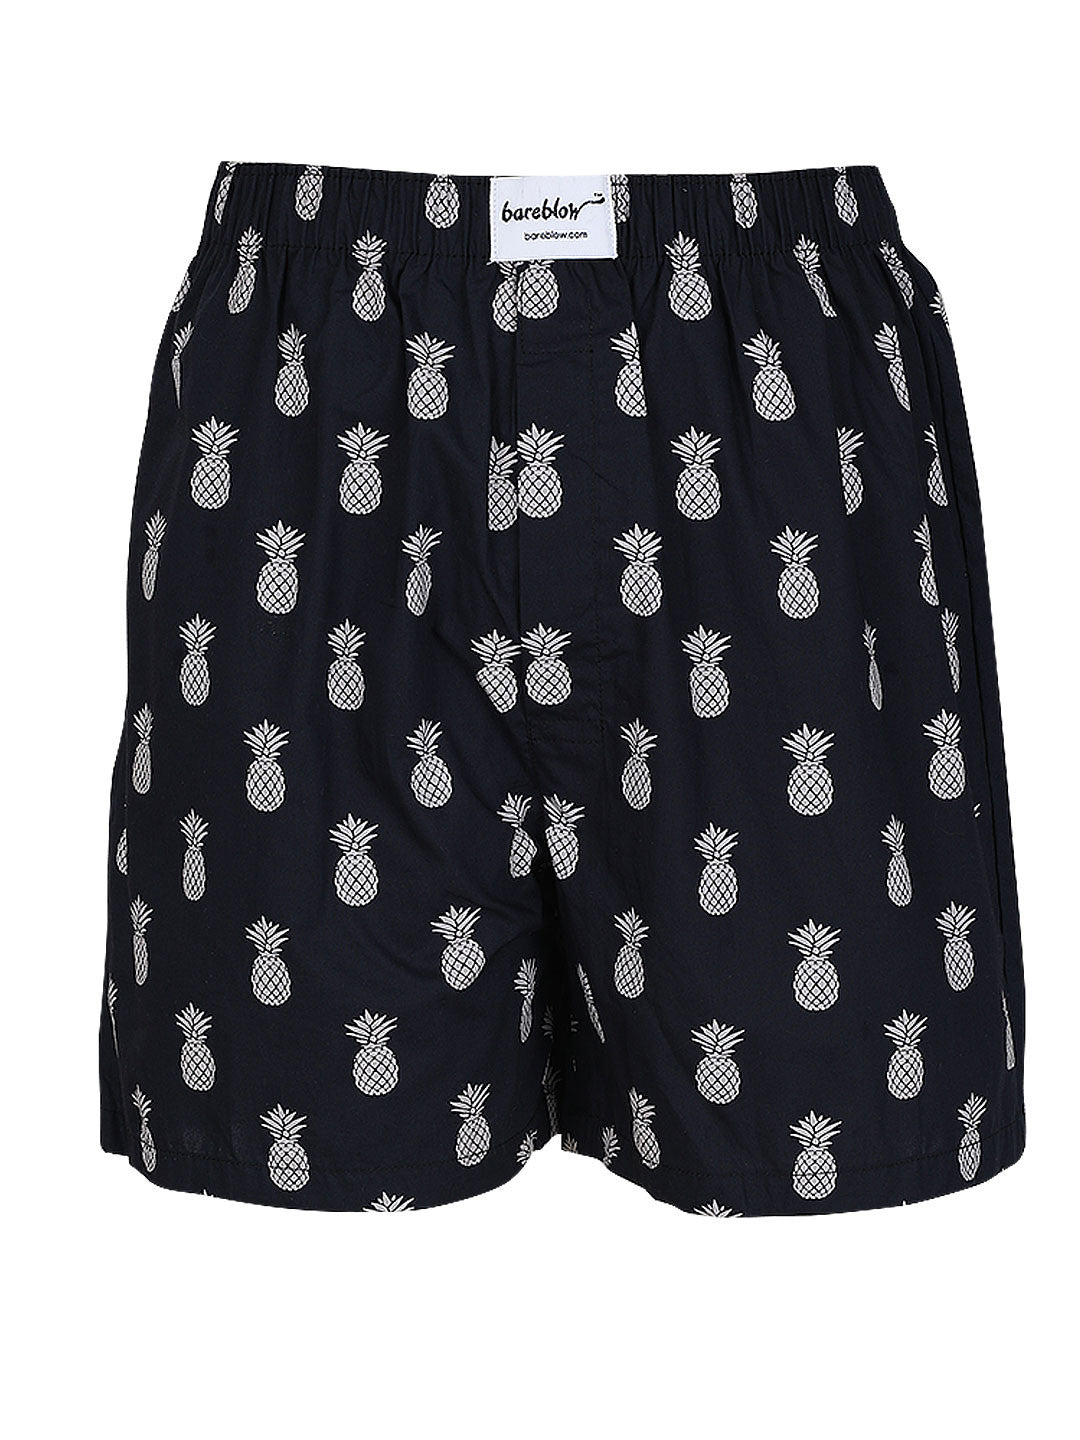 Bareblow Boxers with Pineapple Print